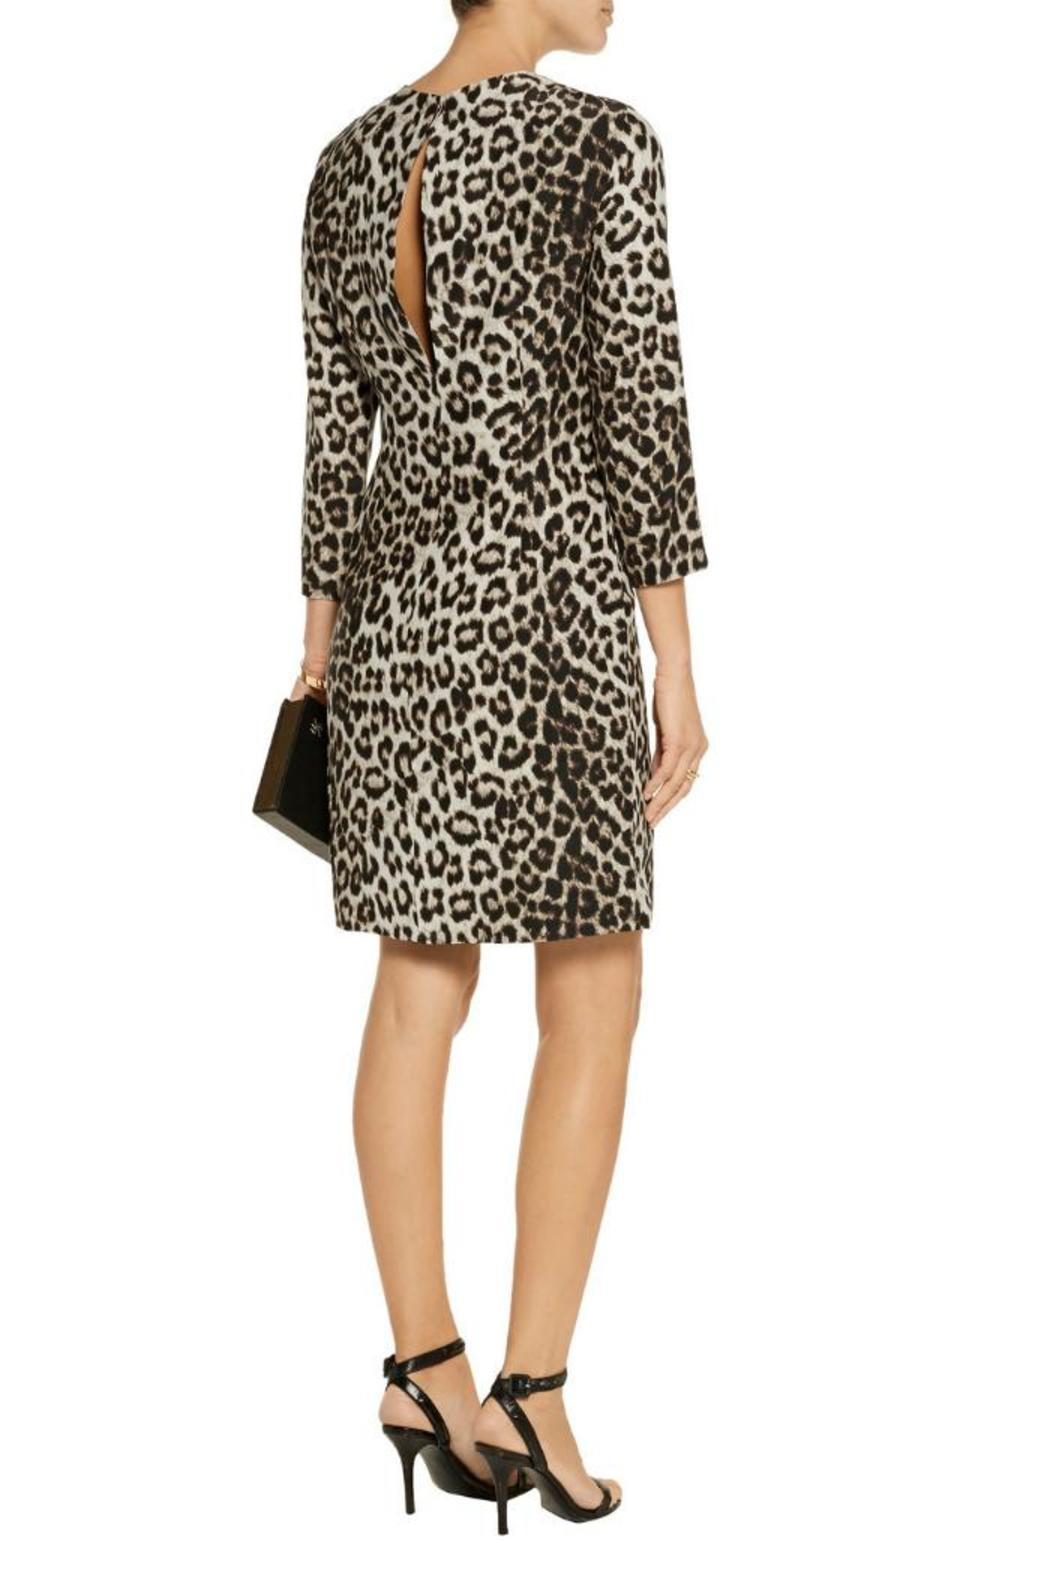 Rag & Bone Short Leopard Dress - Front Full Image